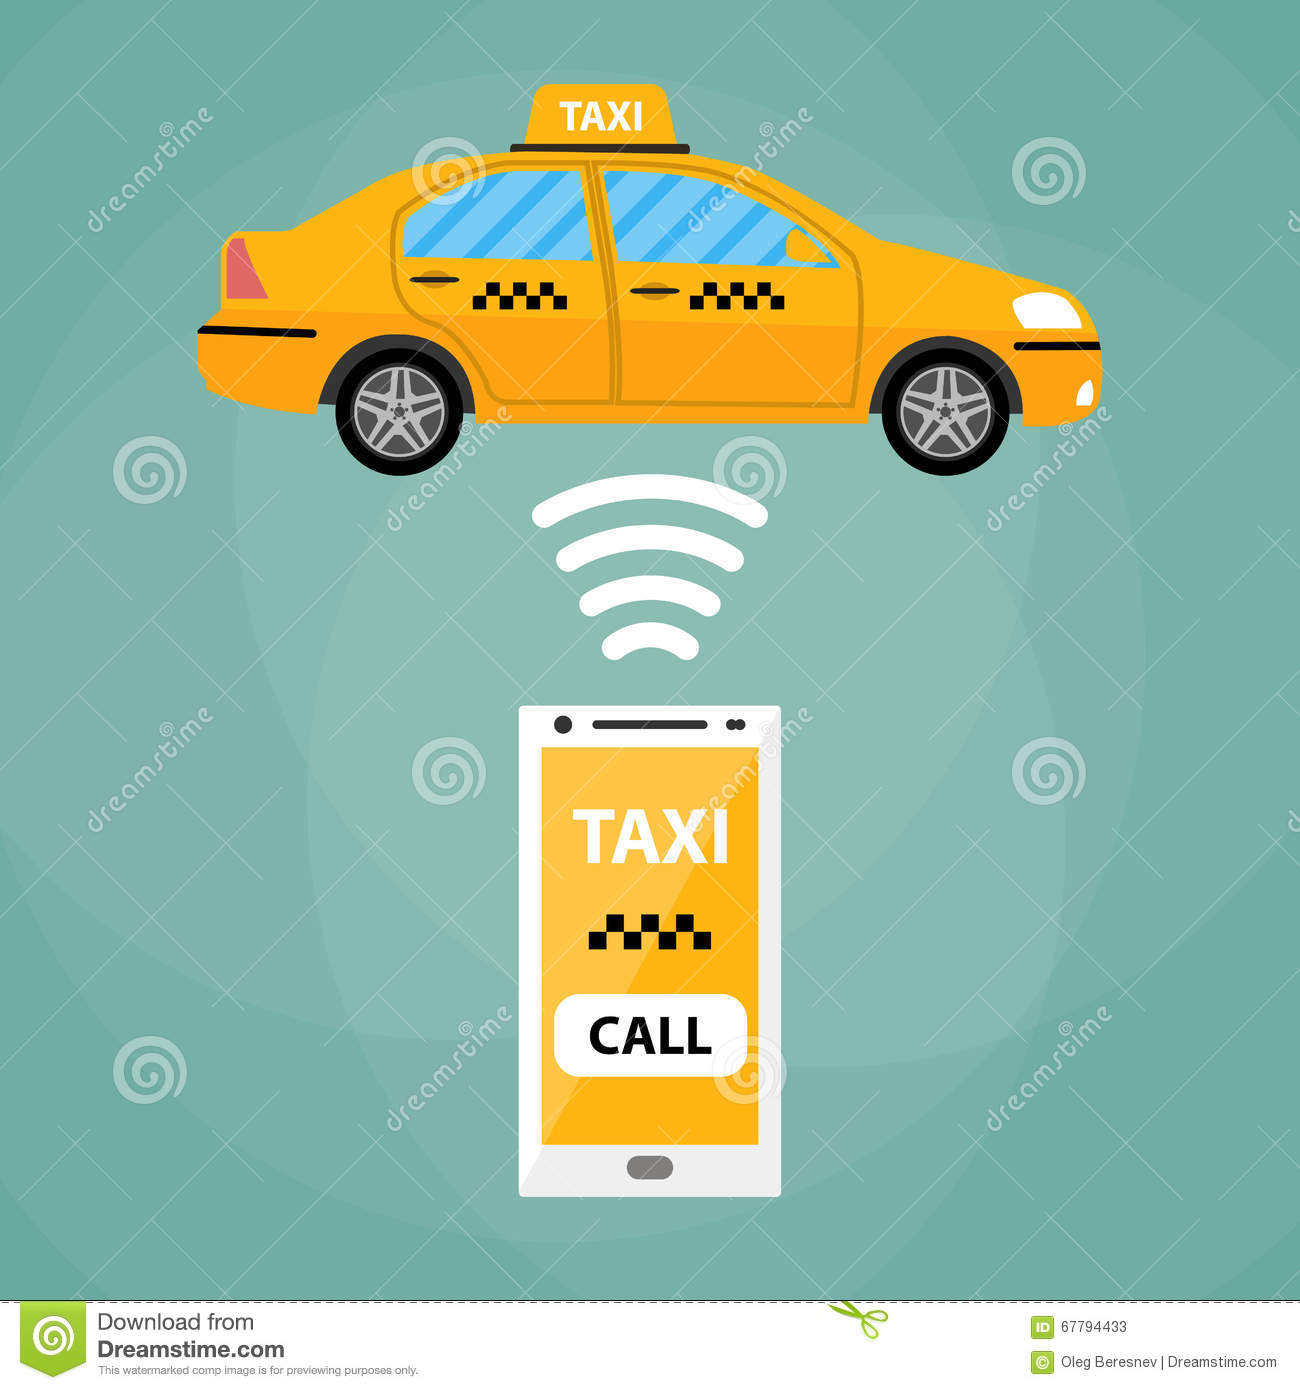 Taxi Mobile App Concept Stock Vector. Image Of Concept